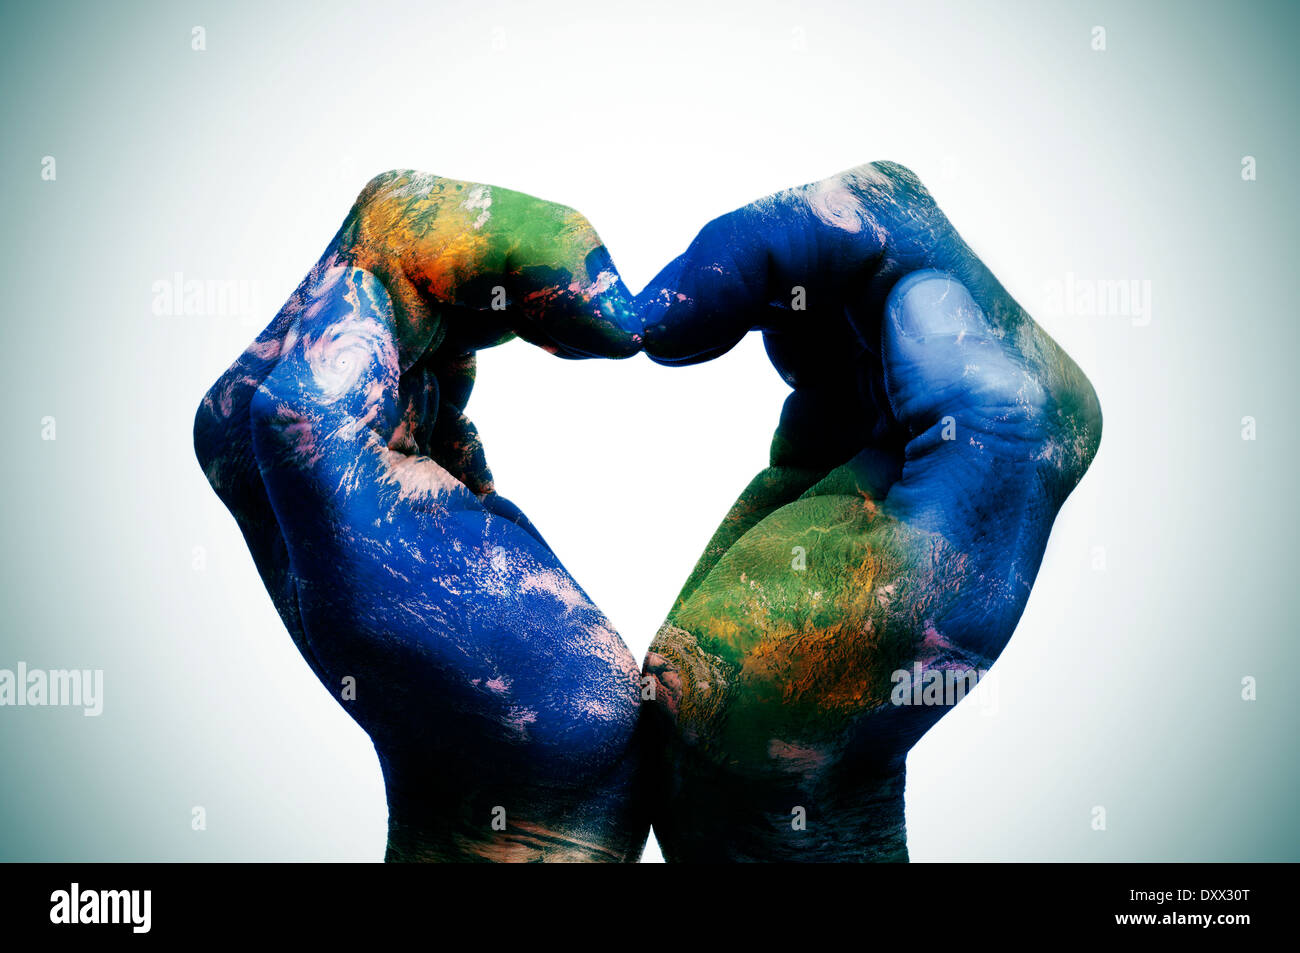 A world map in man hands forming a heart earth map furnished by a world map in man hands forming a heart earth map furnished by stock photo 68185288 alamy gumiabroncs Gallery